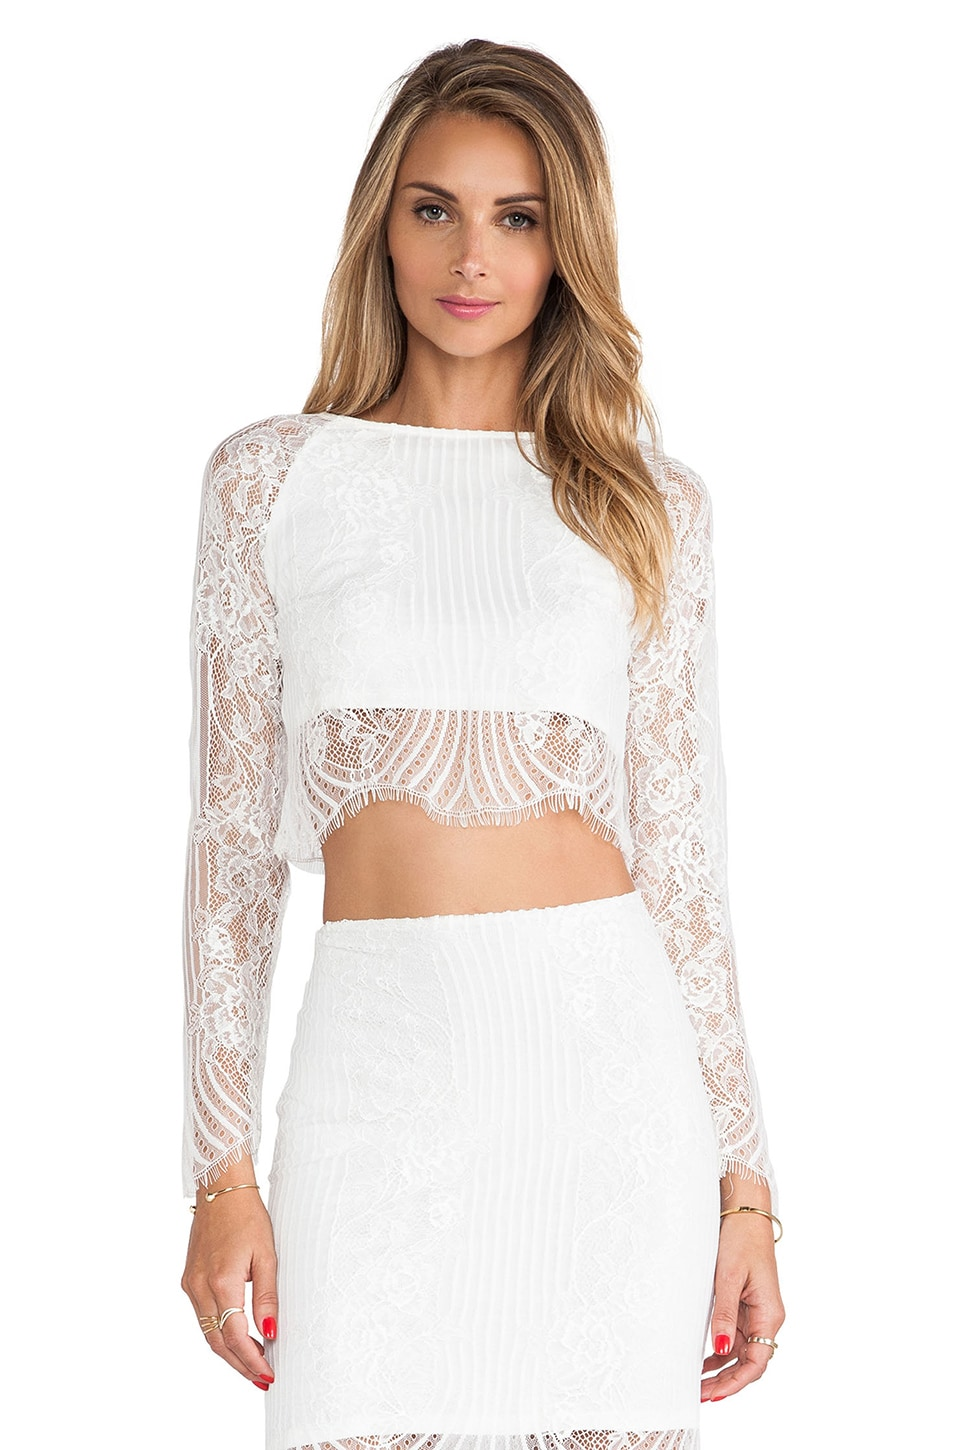 For Love & Lemons Lolo Crop Top in White